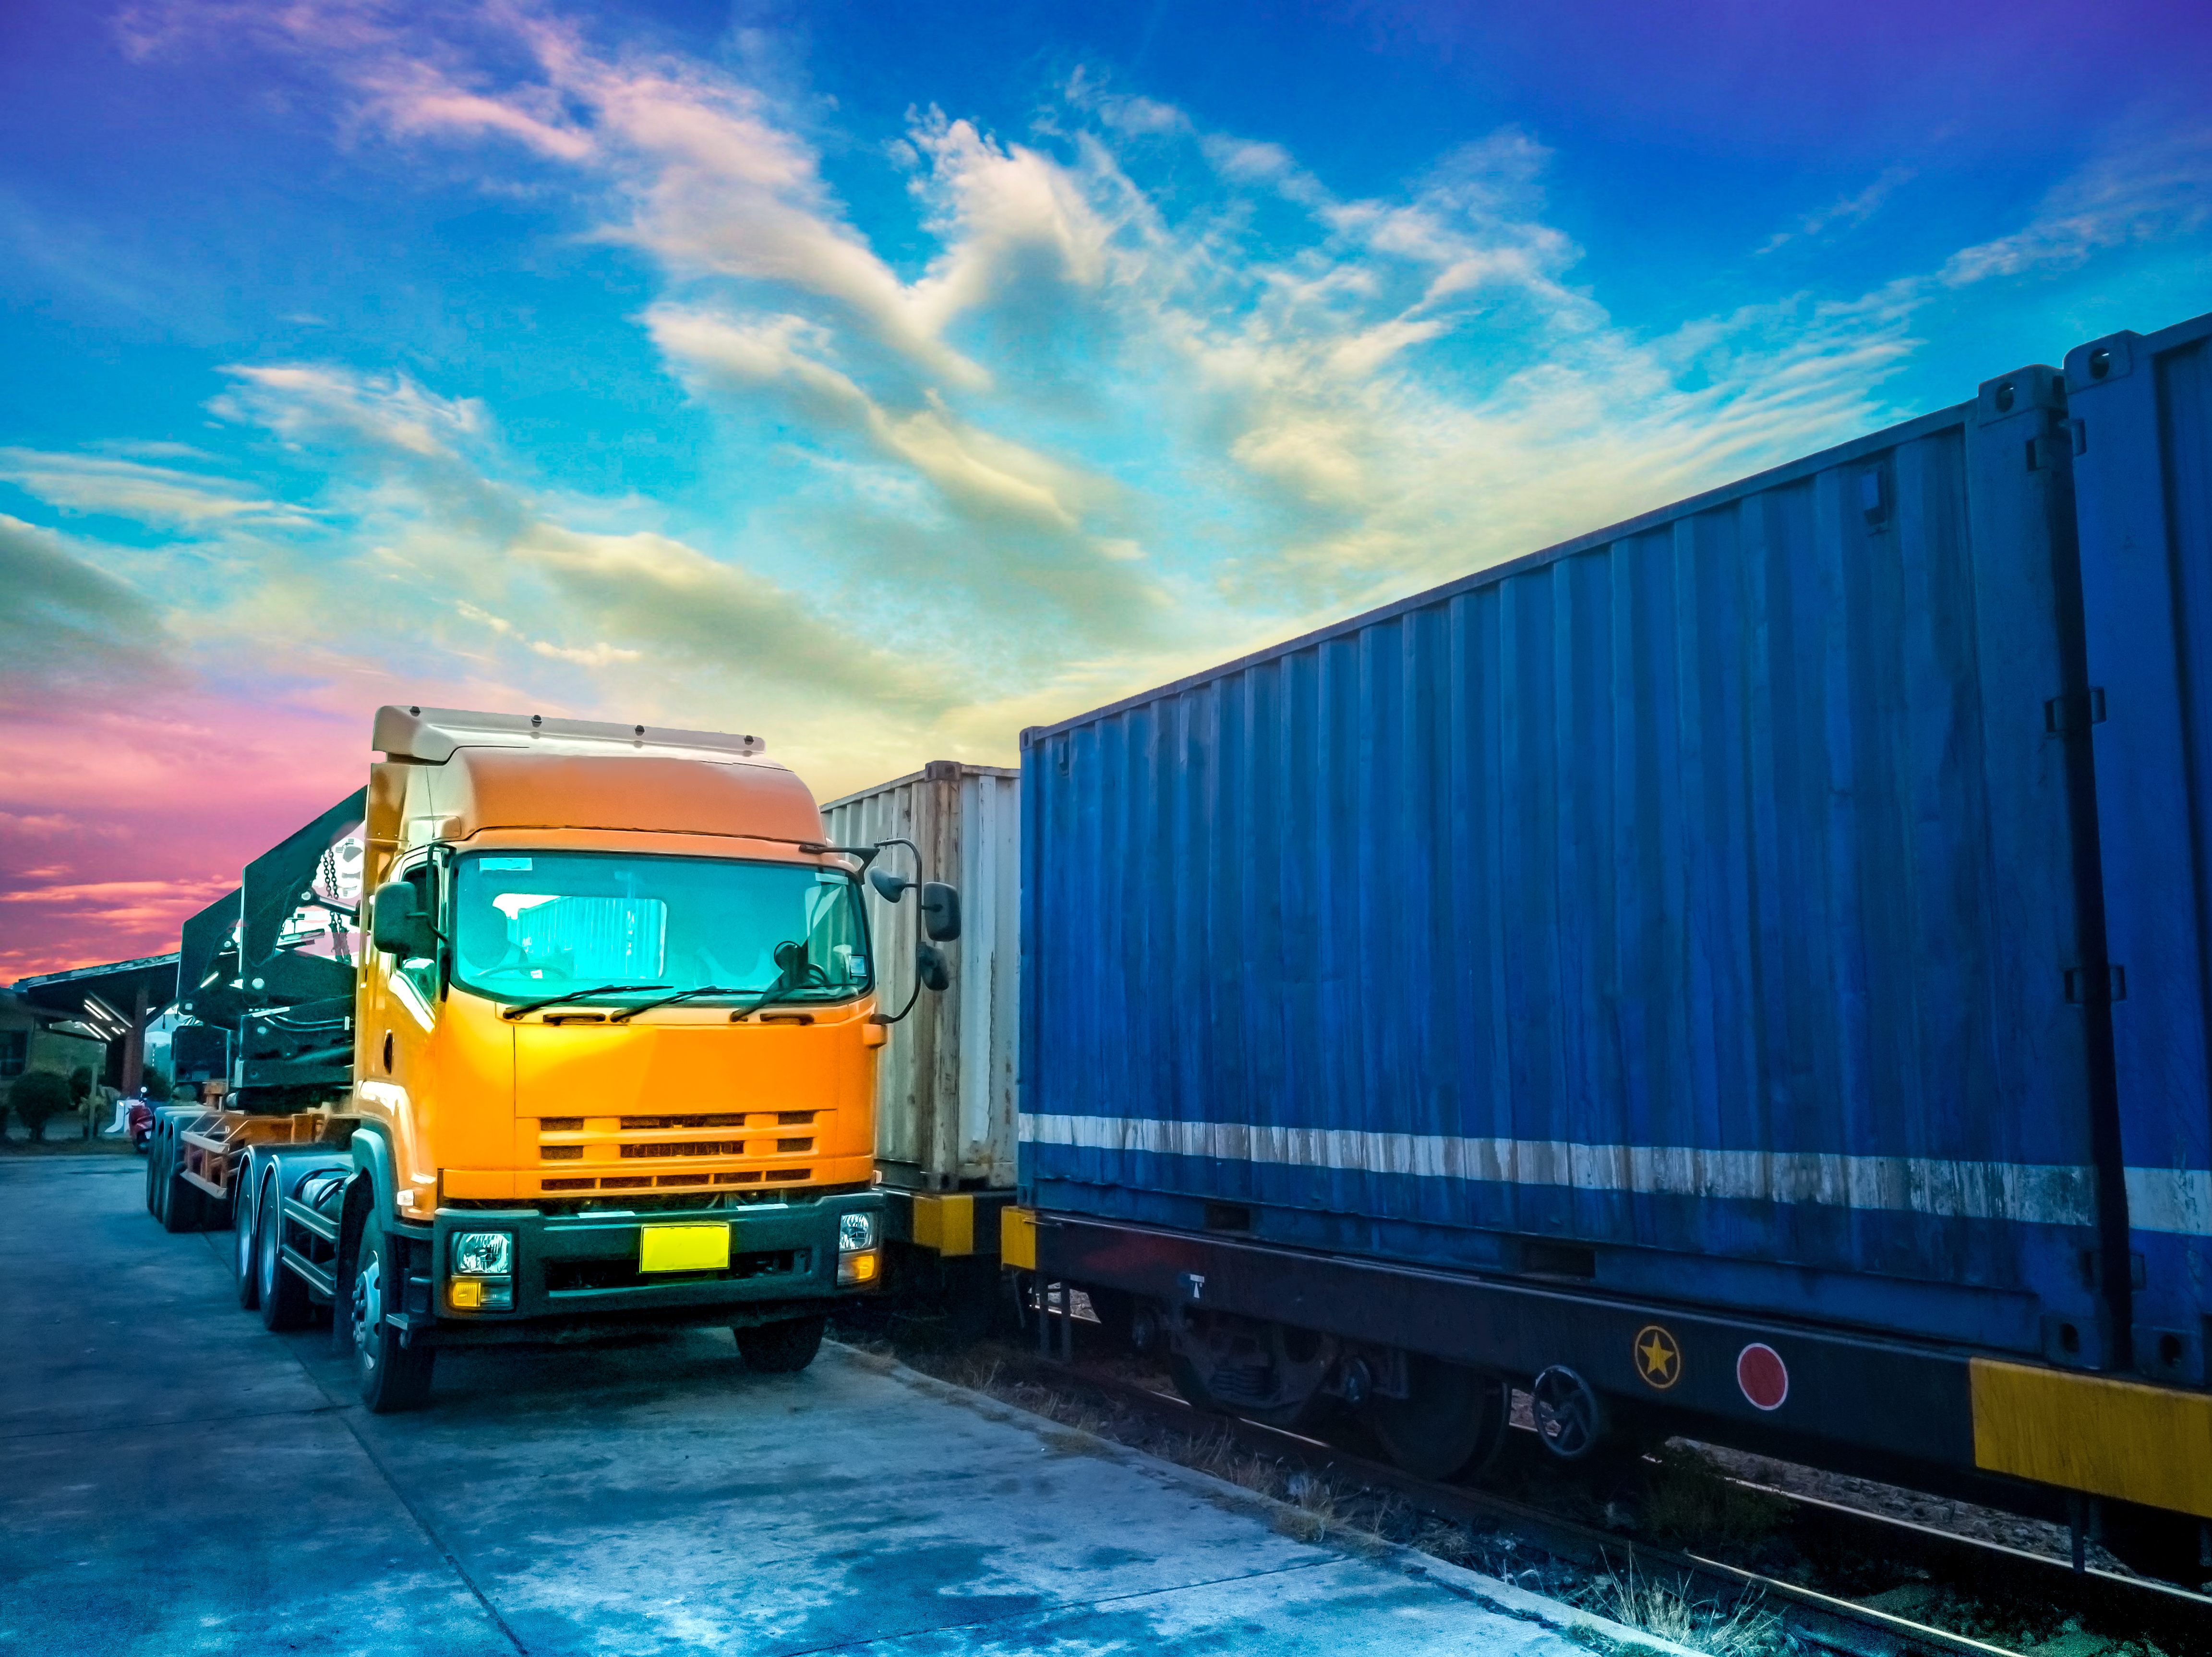 Rail Freight Tightness Pushing Capacity Onto OTR, Trucking Rates Rising with Low Availability